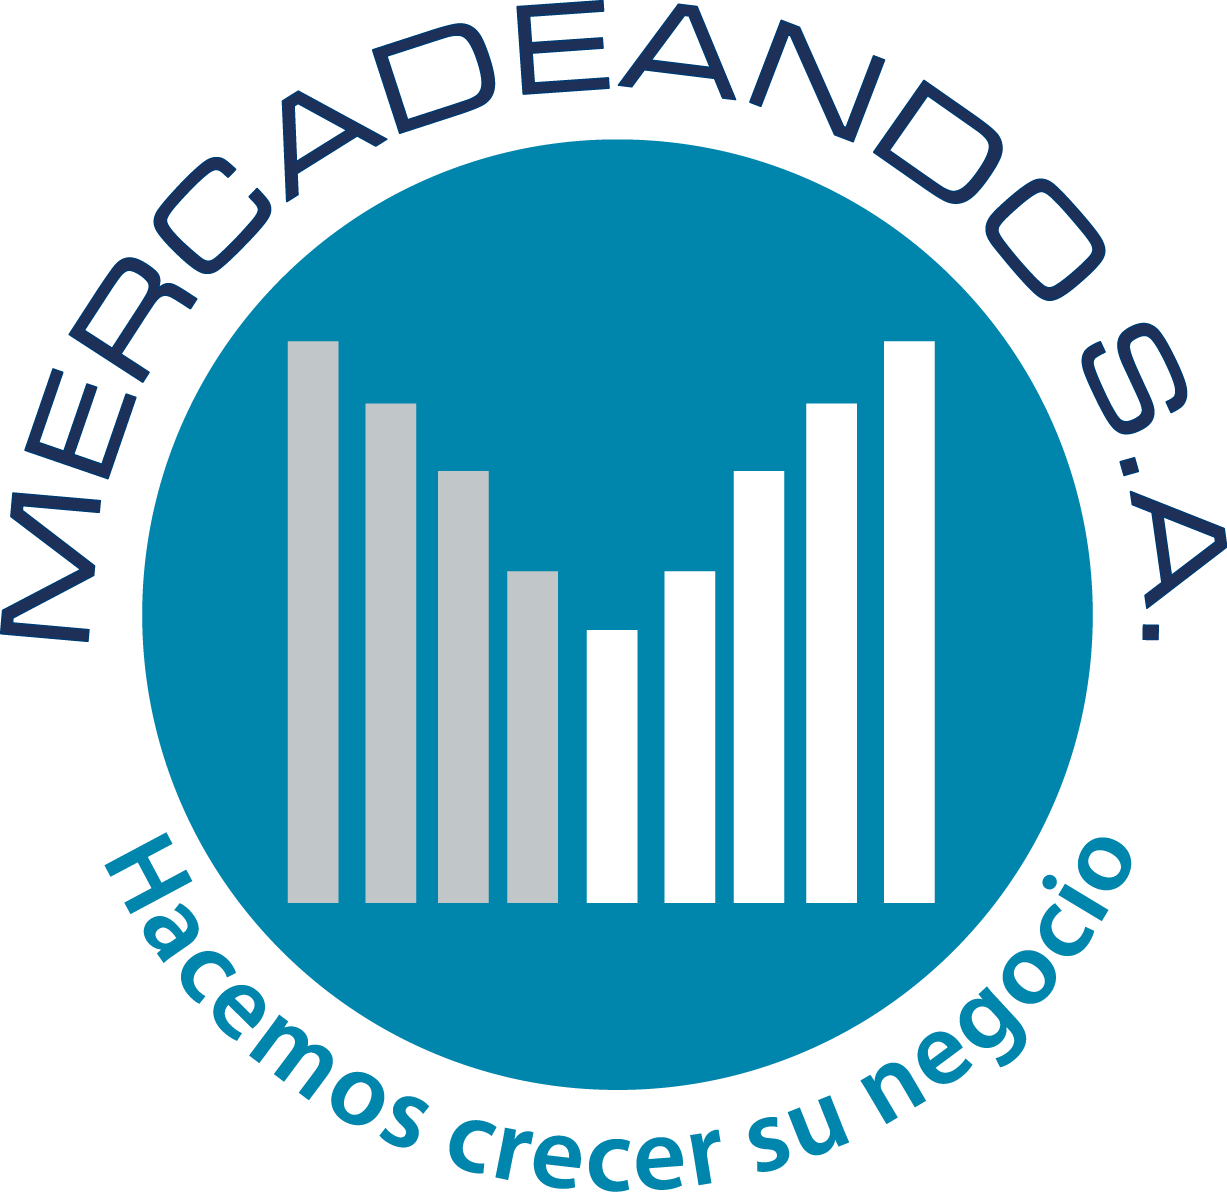 Mercadeando S.A. | Consultoría en Marketing Estratégico y Ventas